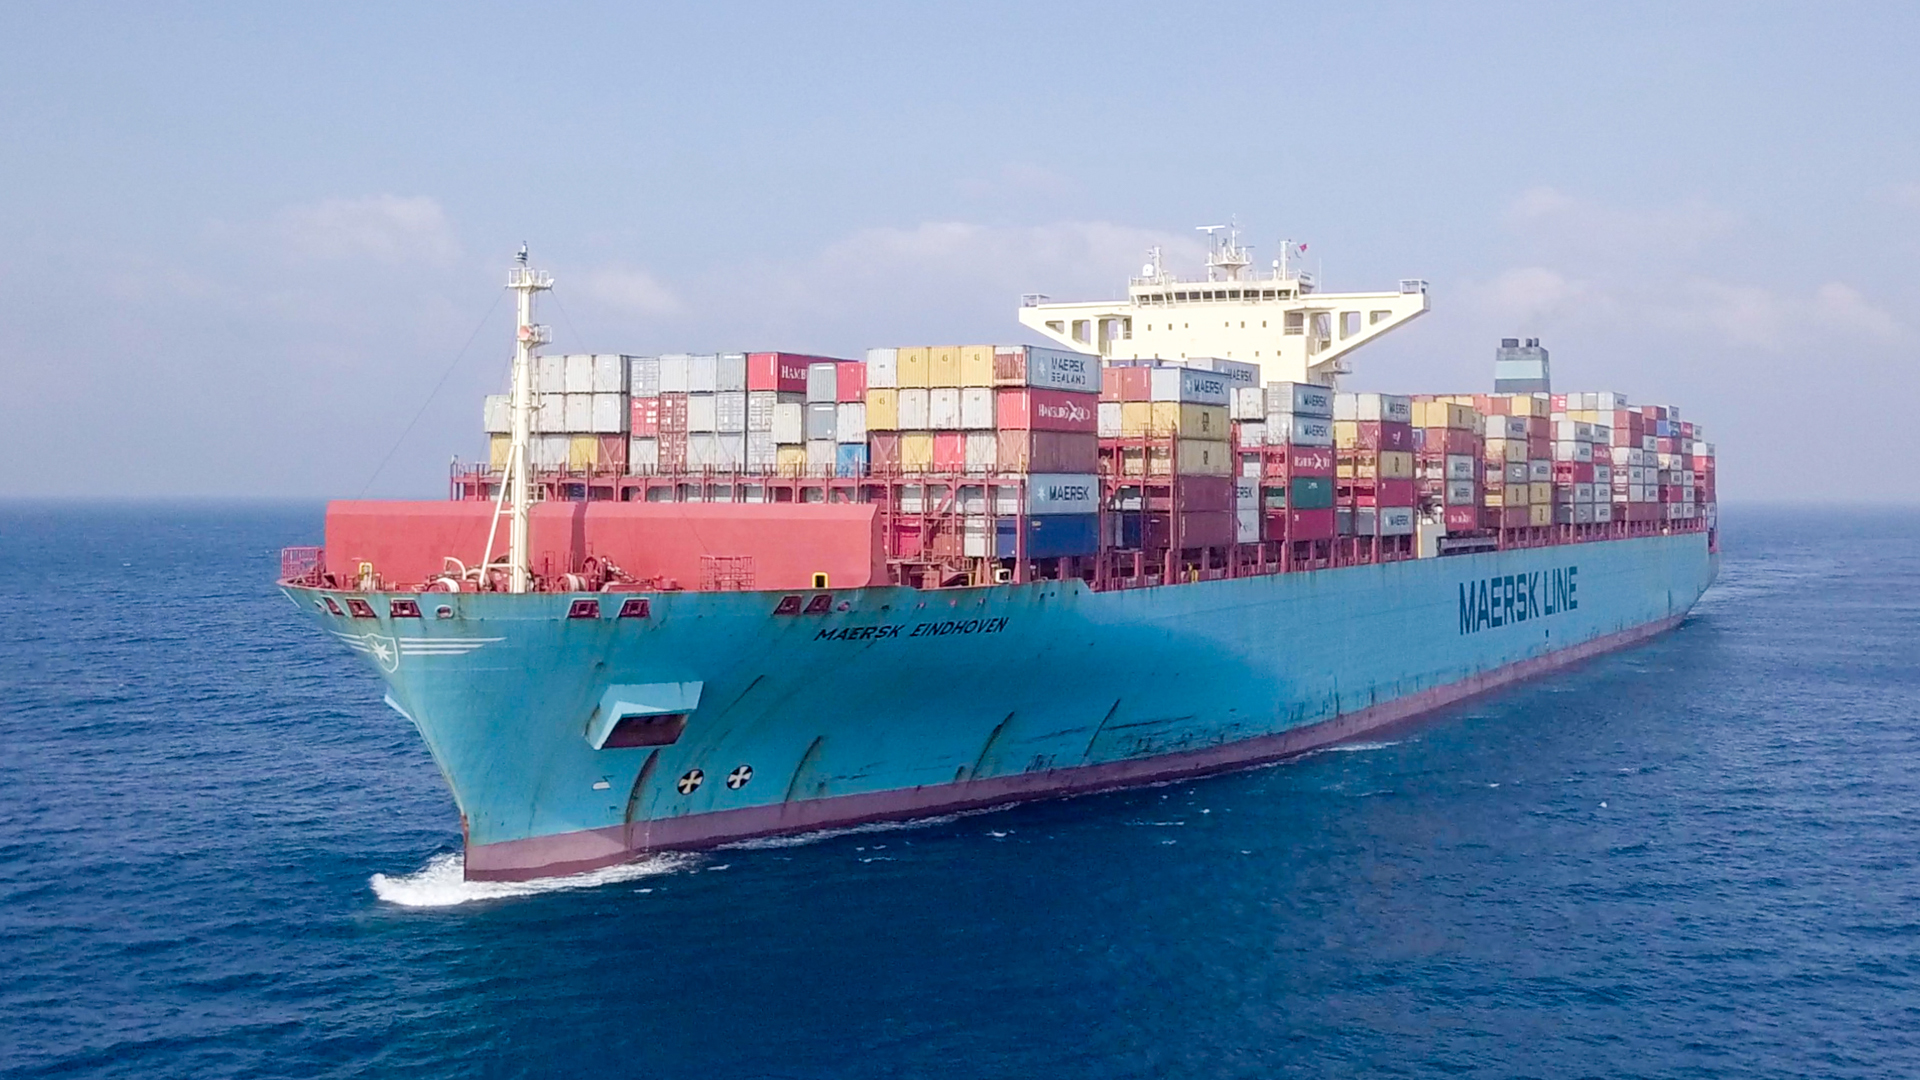 Maersk Eindhoven waits for clearance by Japanese authorities